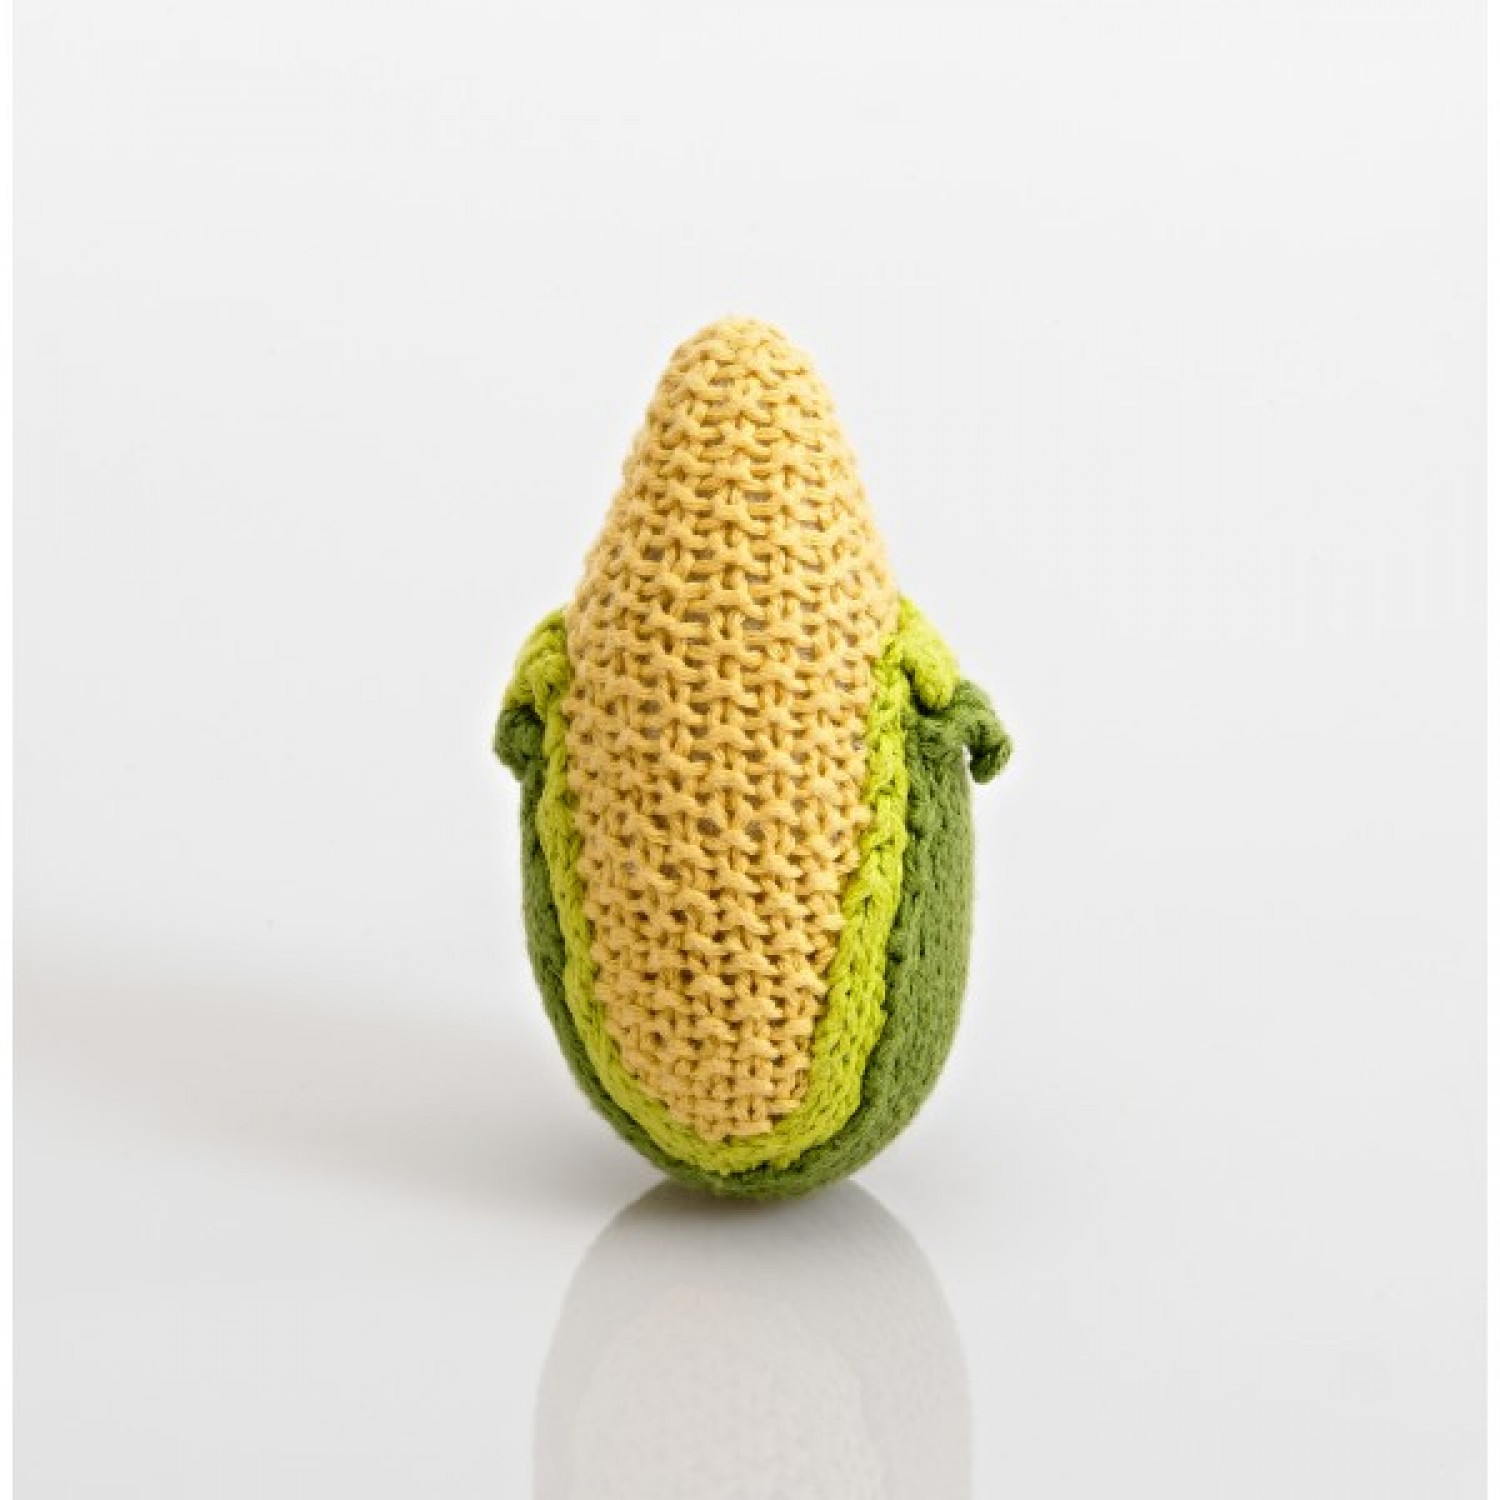 Pebble Vegetable Rattle – Corn made of Cotton